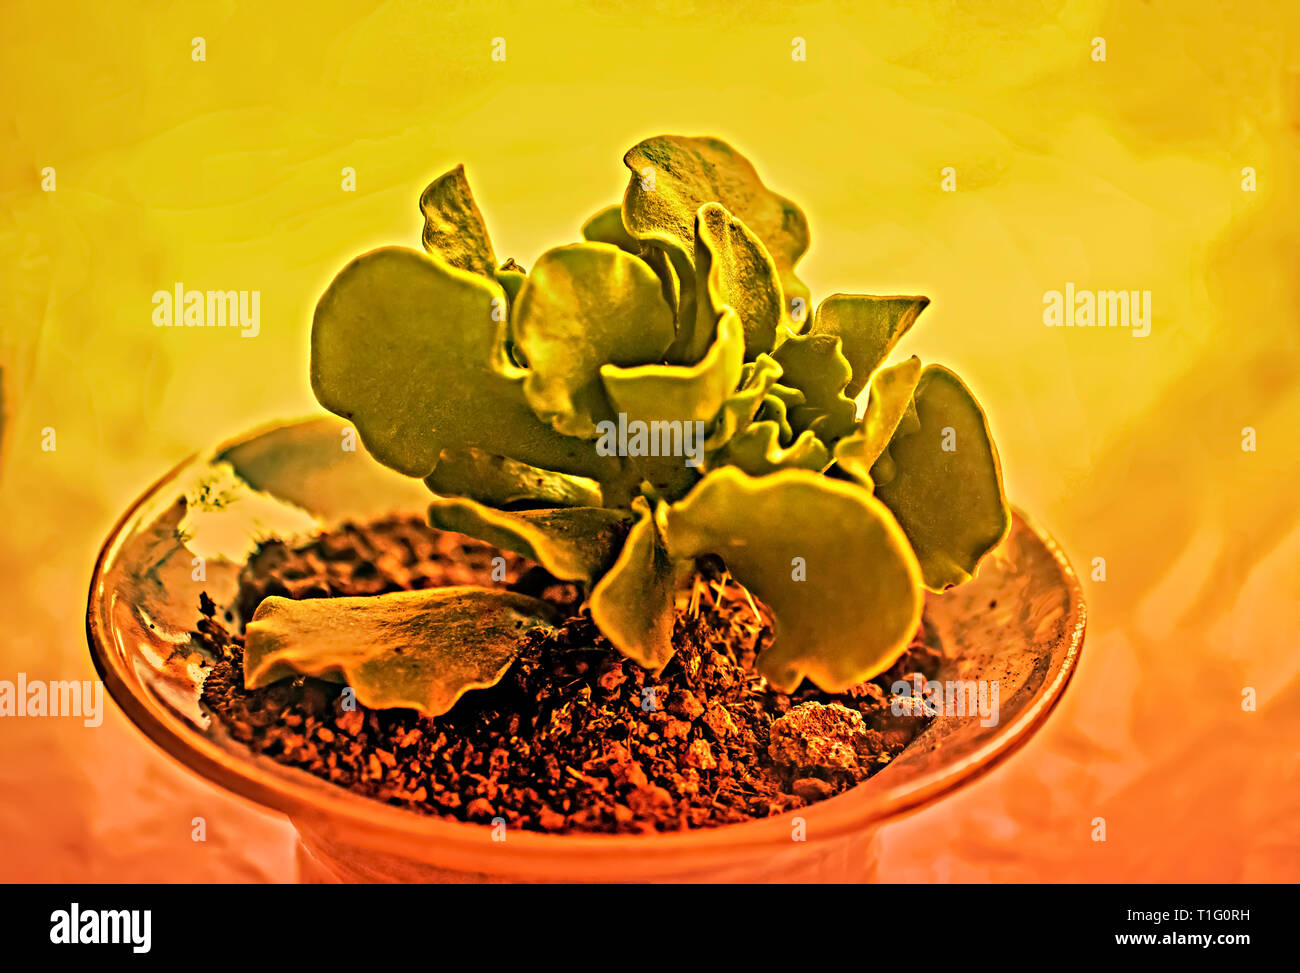 Digitally enhanced image of a potted Adromischus cristatus - Stock Image